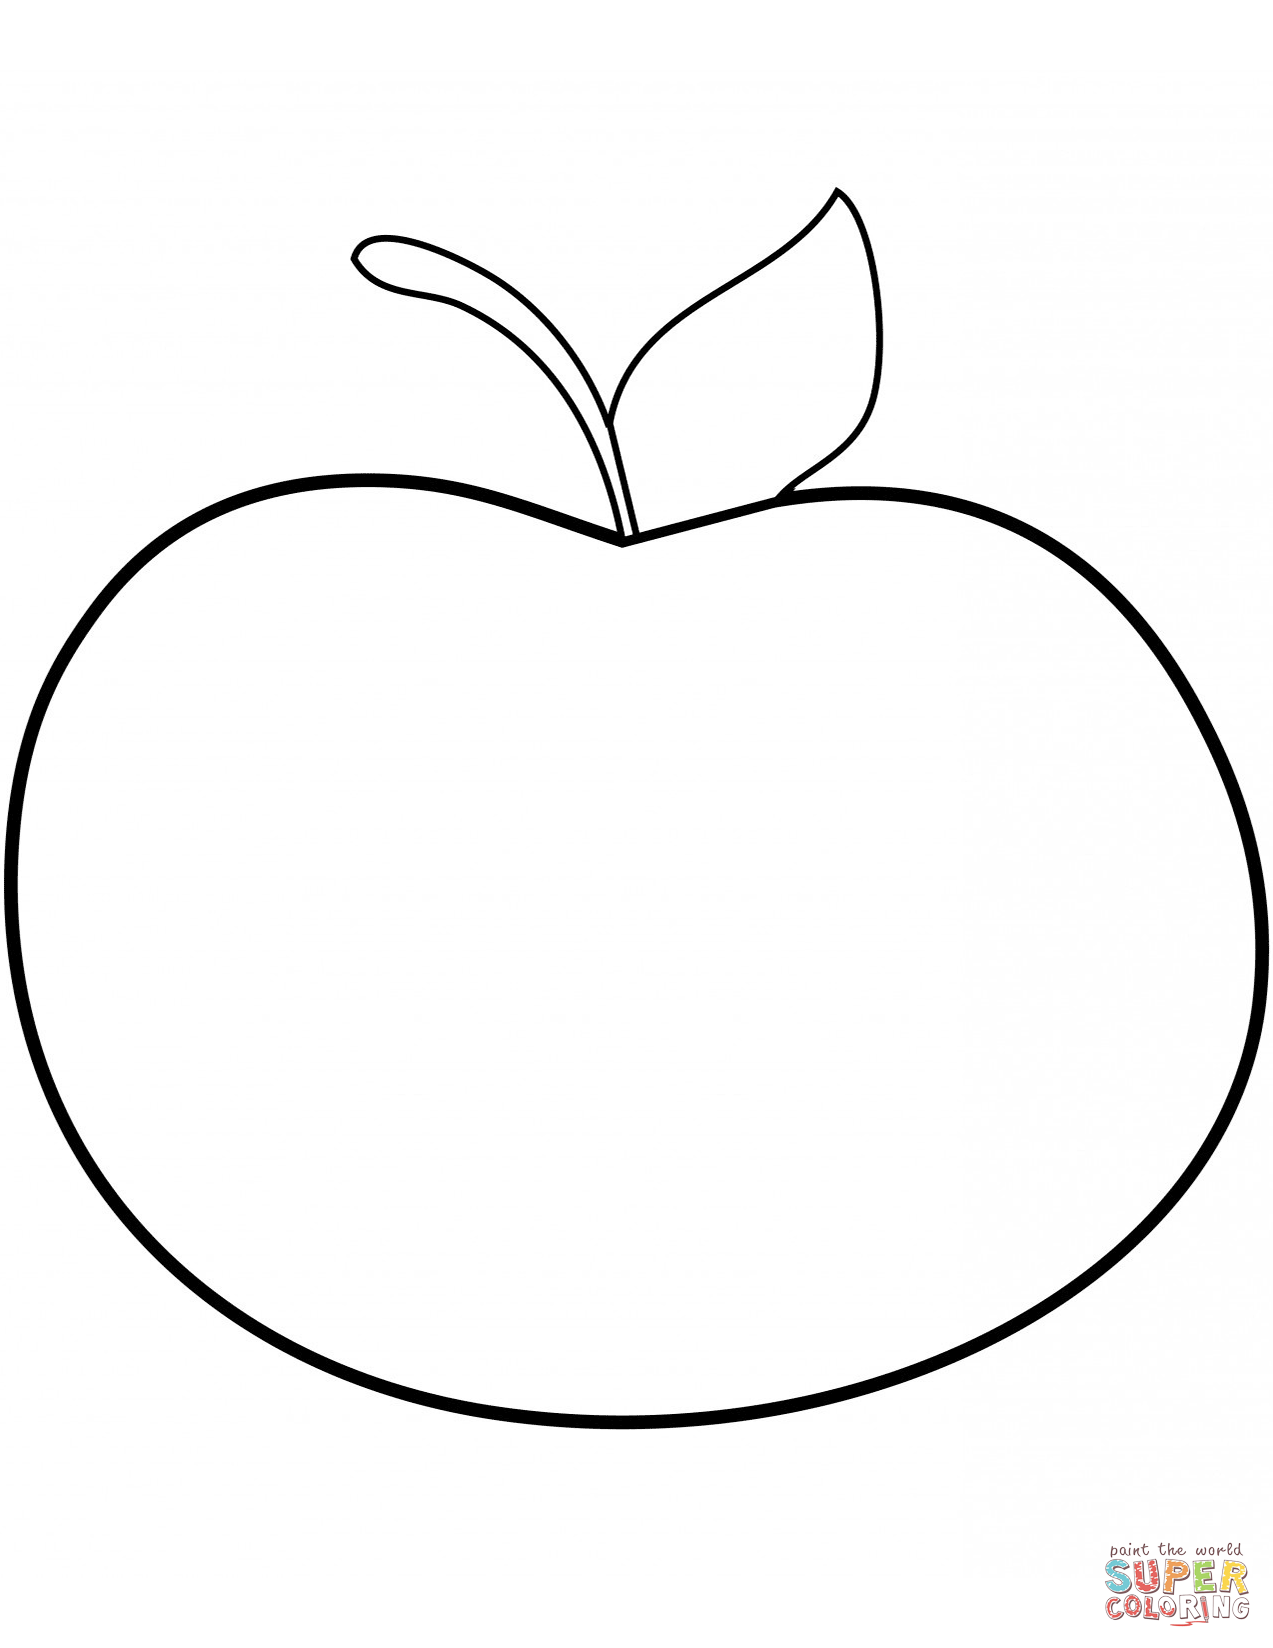 Free Apple Coloring Pages at GetDrawings.com | Free for ...